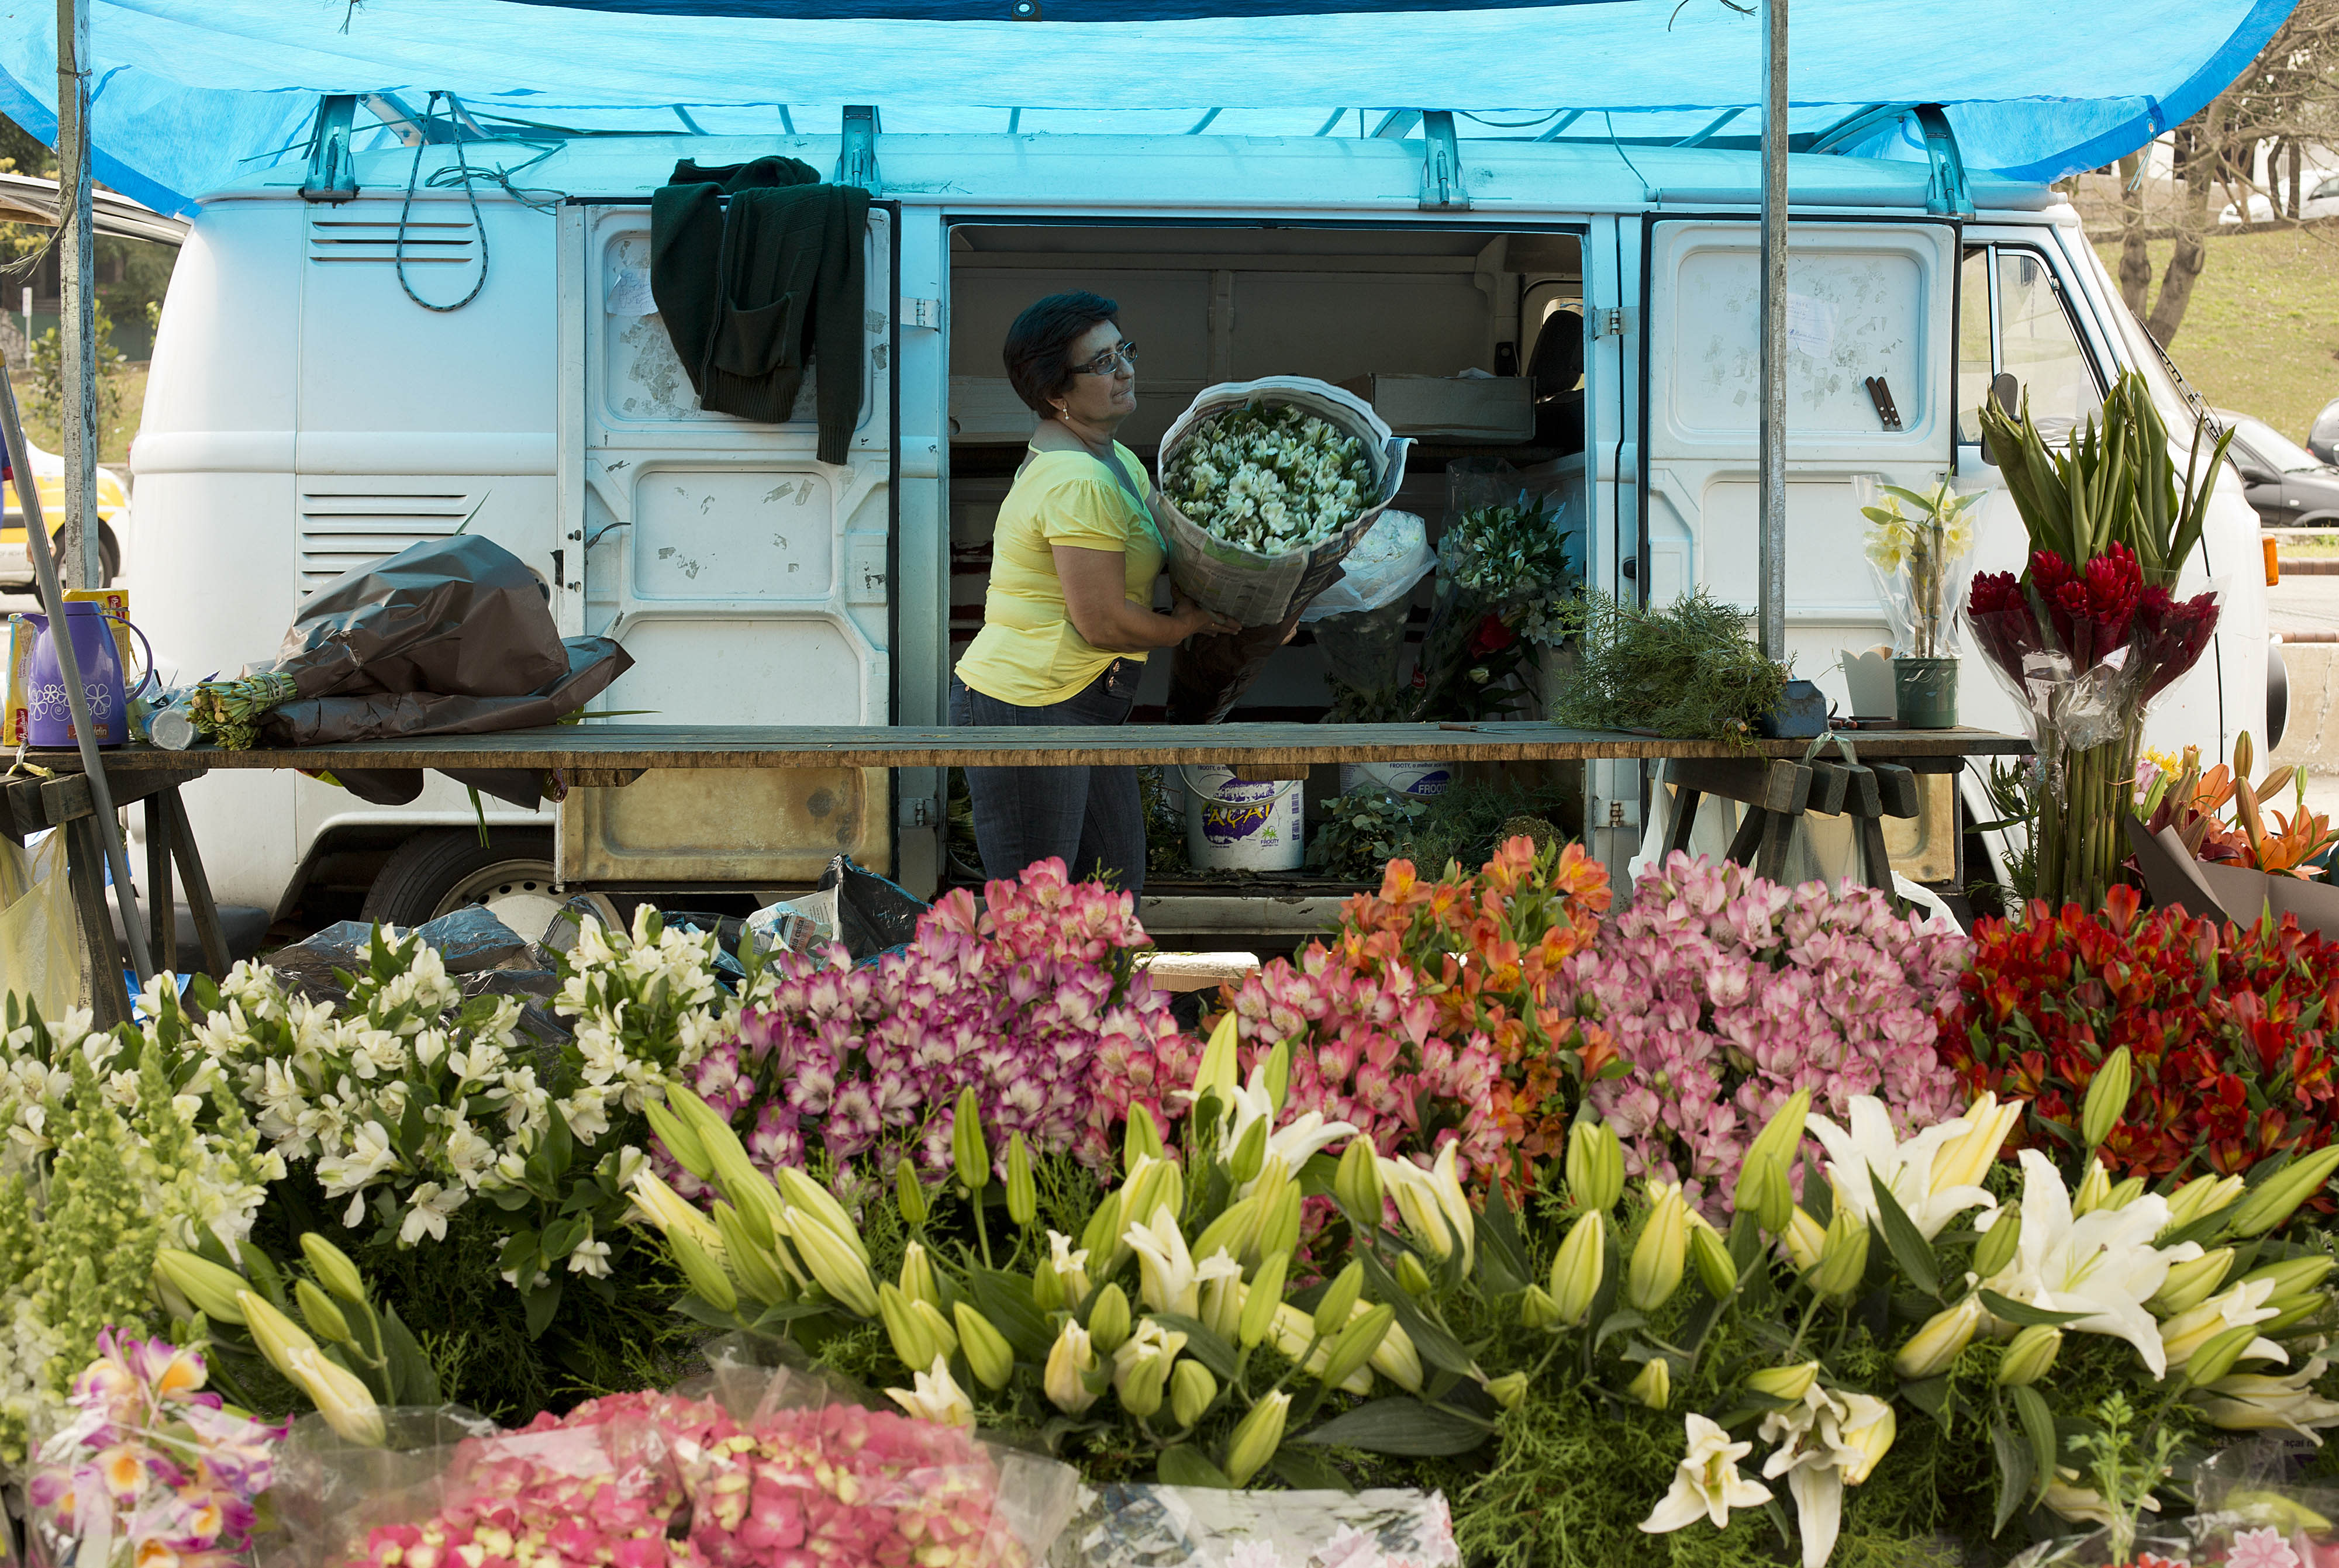 """In this Sept. 3, 2013 photo, a vendor unloads a bouquet of flowers from her Volkswagen van, at a street market in Sao Paulo, Brazil. In Brazil the VW van is known as the """"Kombi,"""" an abbreviation for the German """"Kombinationsfahrzeug"""" that loosely translates as """"cargo-passenger van."""" It's used in Brazil by the postal service to haul mail, by the army to transport soldiers, and by morticians to carry corpses. It serves as a school bus for kids, operates as a group taxi, and delivers construction materials to work sites, but VW says production will end Dec. 31. (AP Photo/Andre Penner)"""